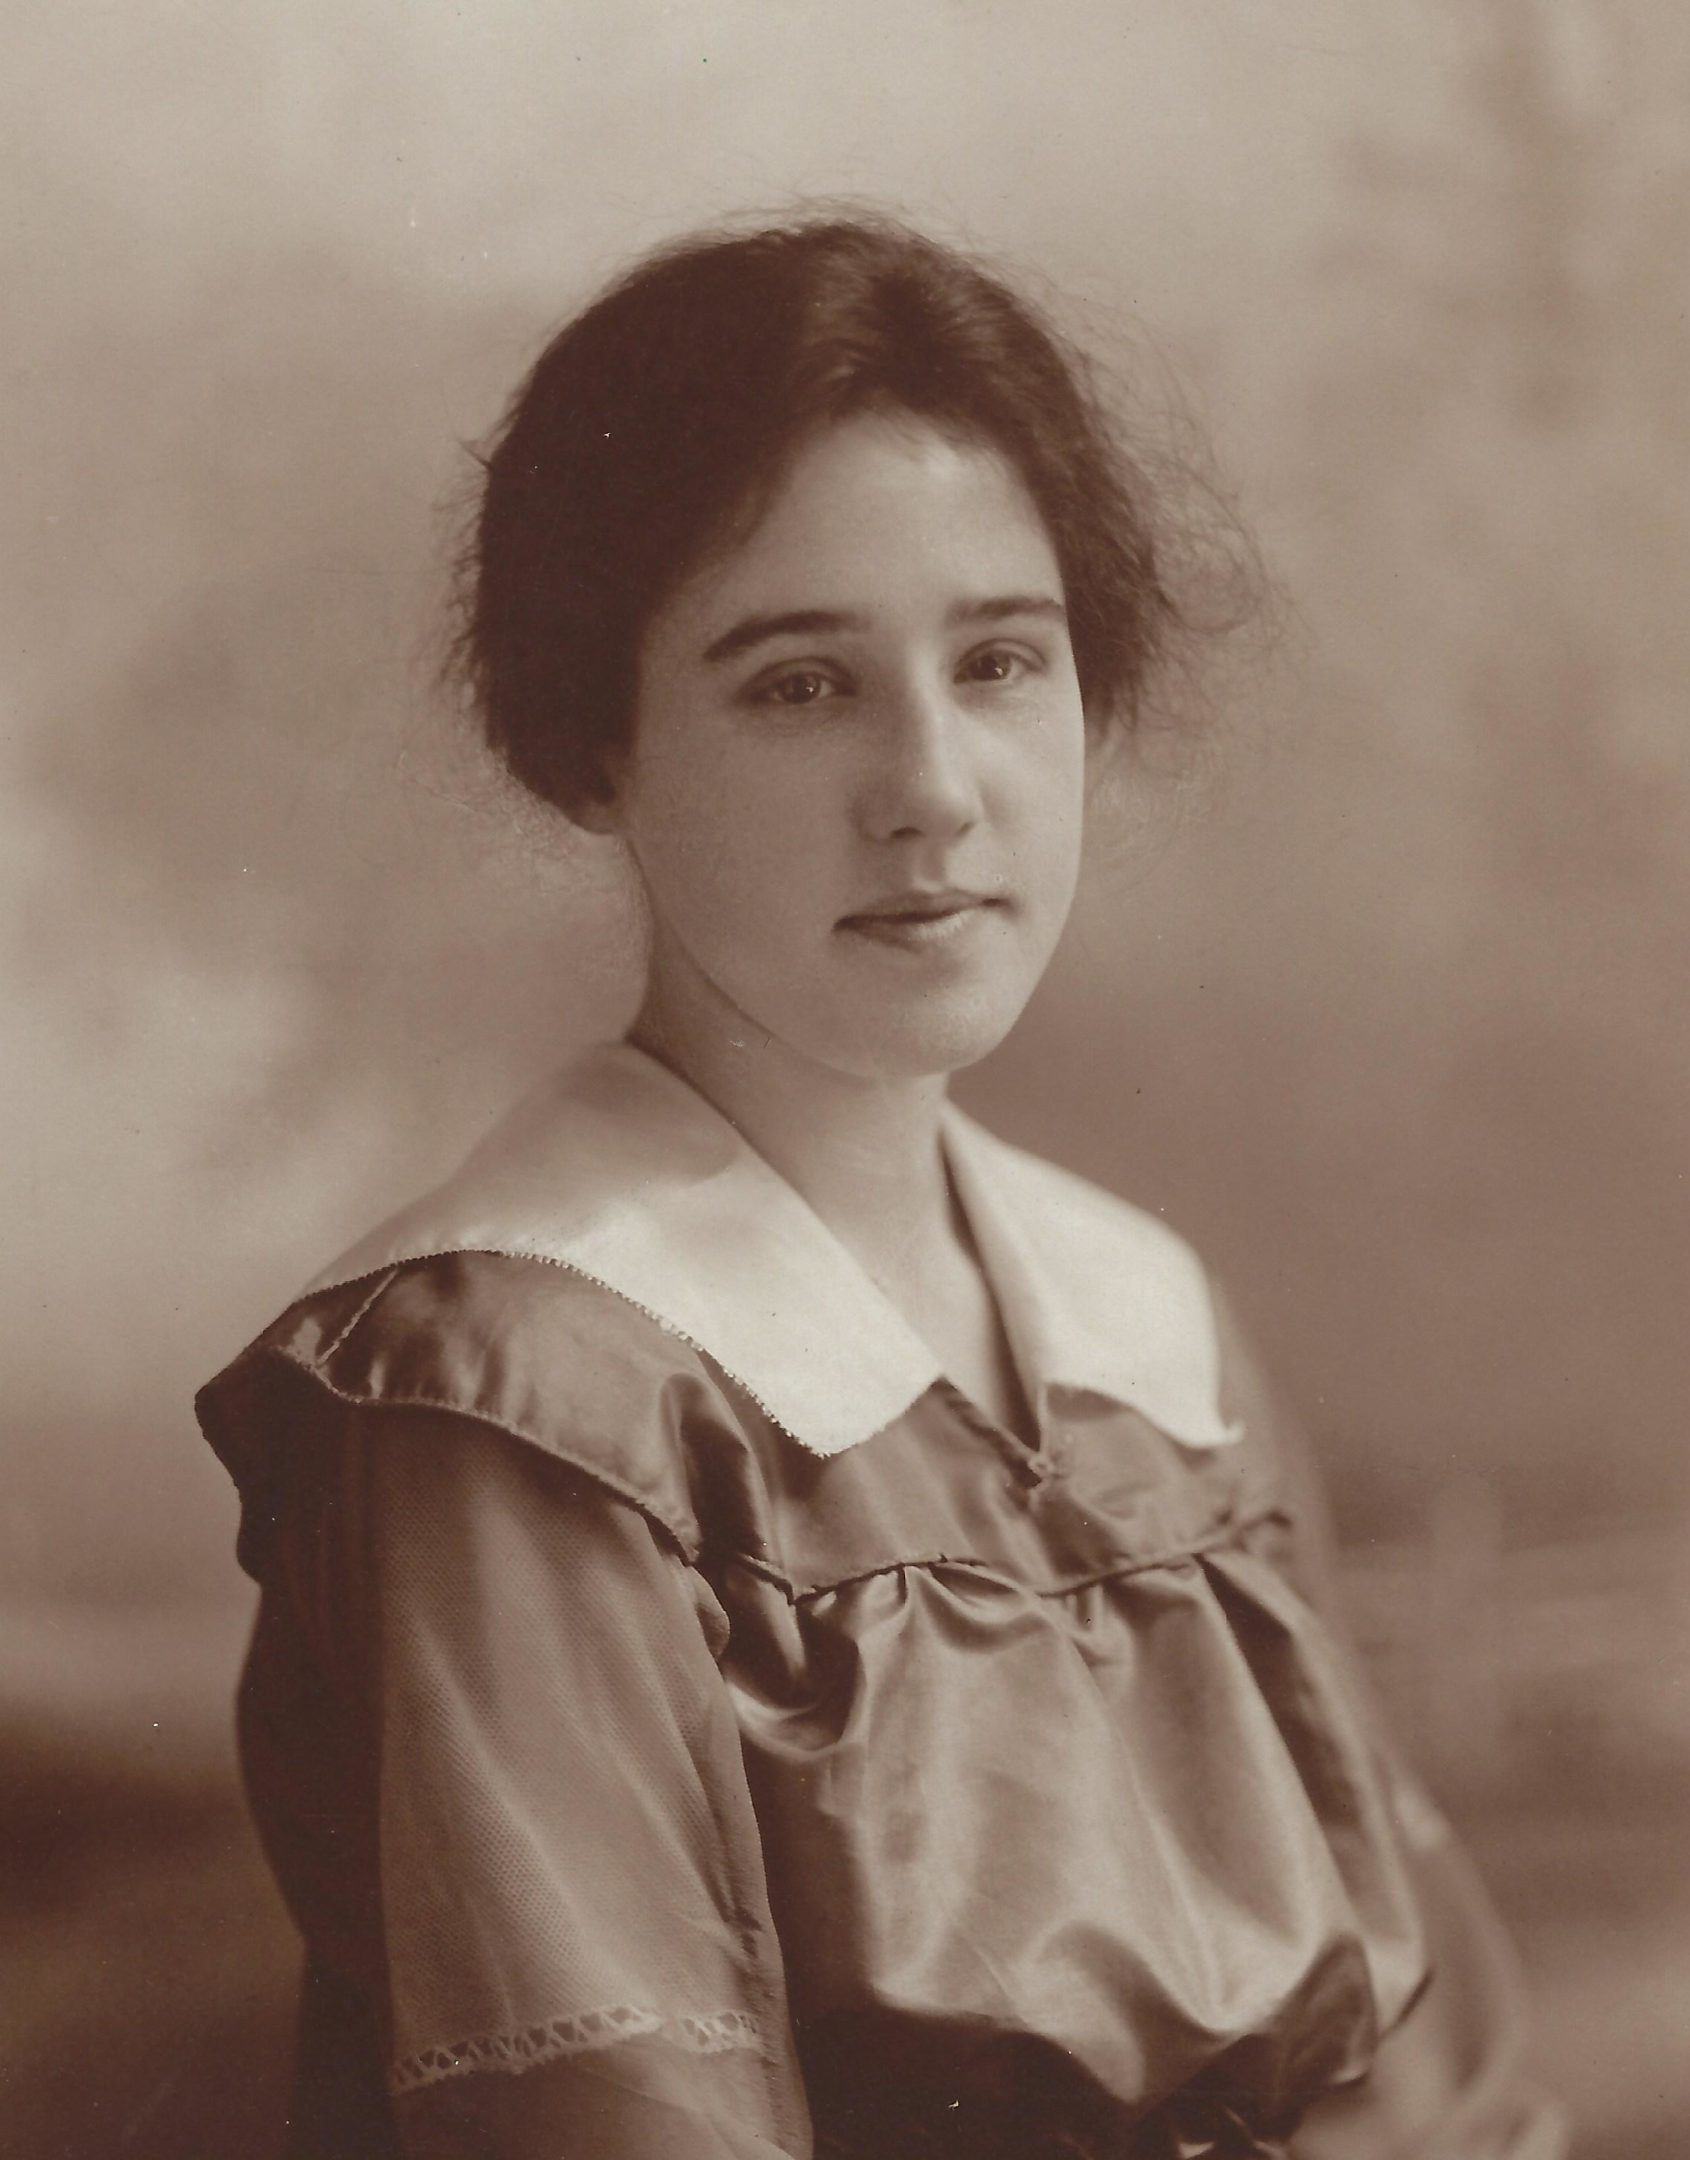 Photo of Wilma Frank Wolfe